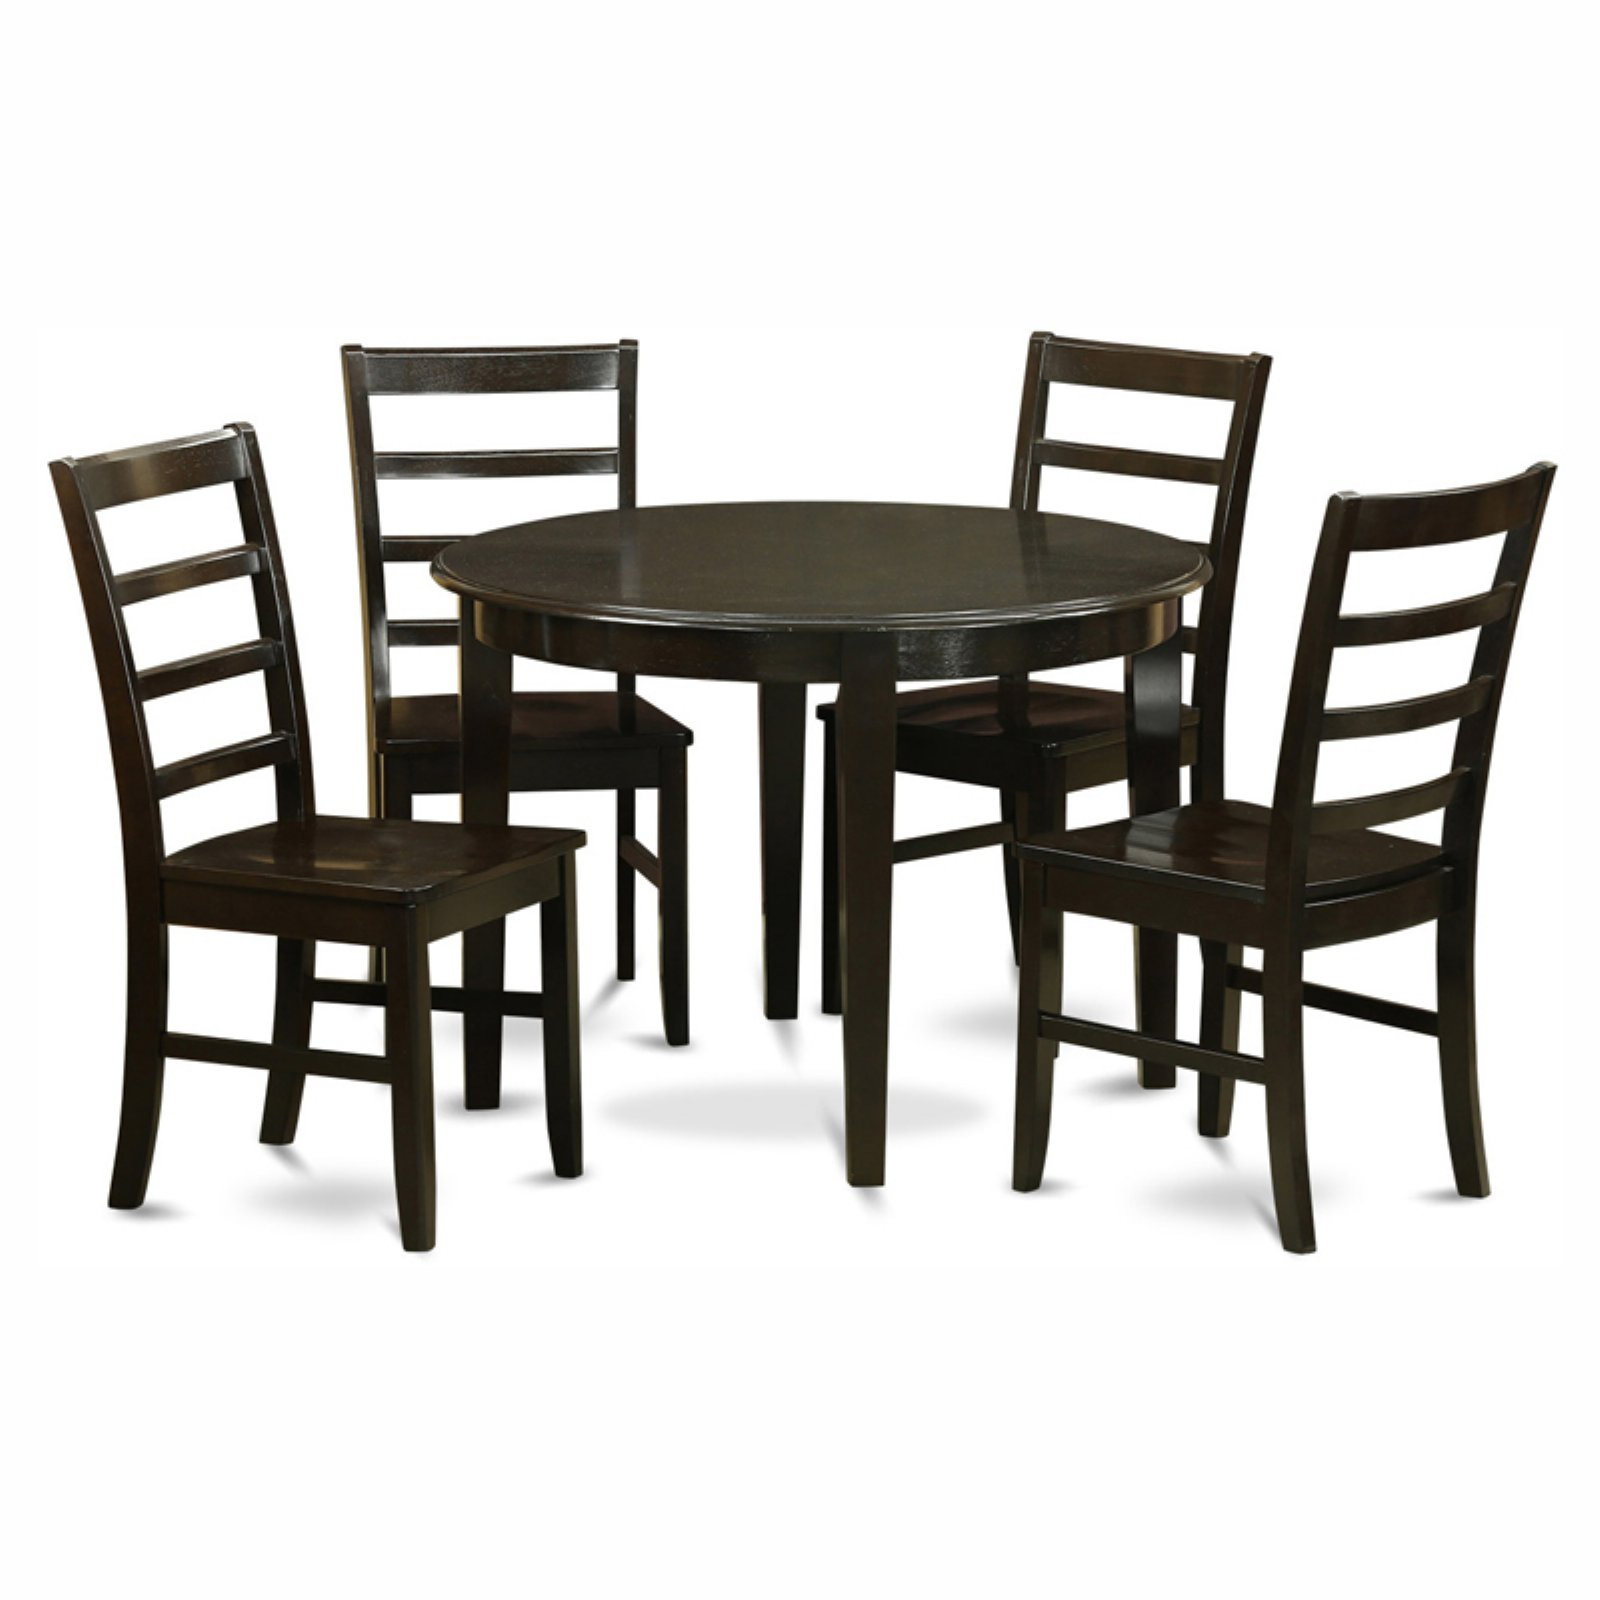 East West Furniture Boston 5 Piece Round Dining Table Set with Parfait Wooden Seat Chairs